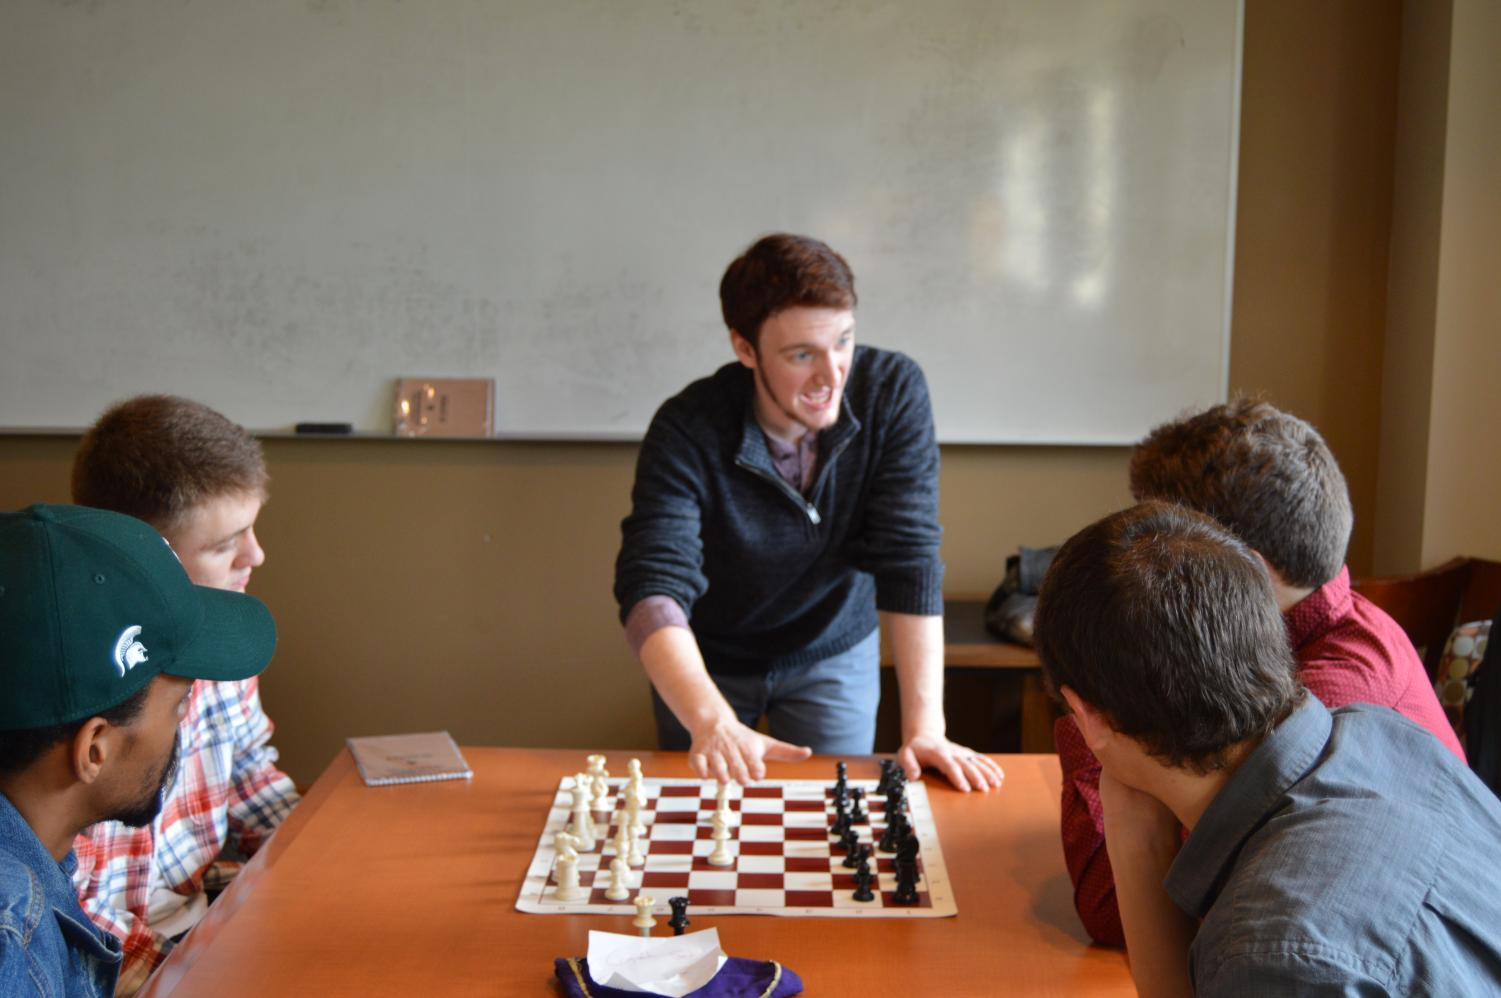 Chess club president Raymond Shiner, a licensed chess coach, provides instruction to new players during a Friday meeting. The chess club has drop-in play on Fridays at noon   Jeremy Burnham for The Easterner